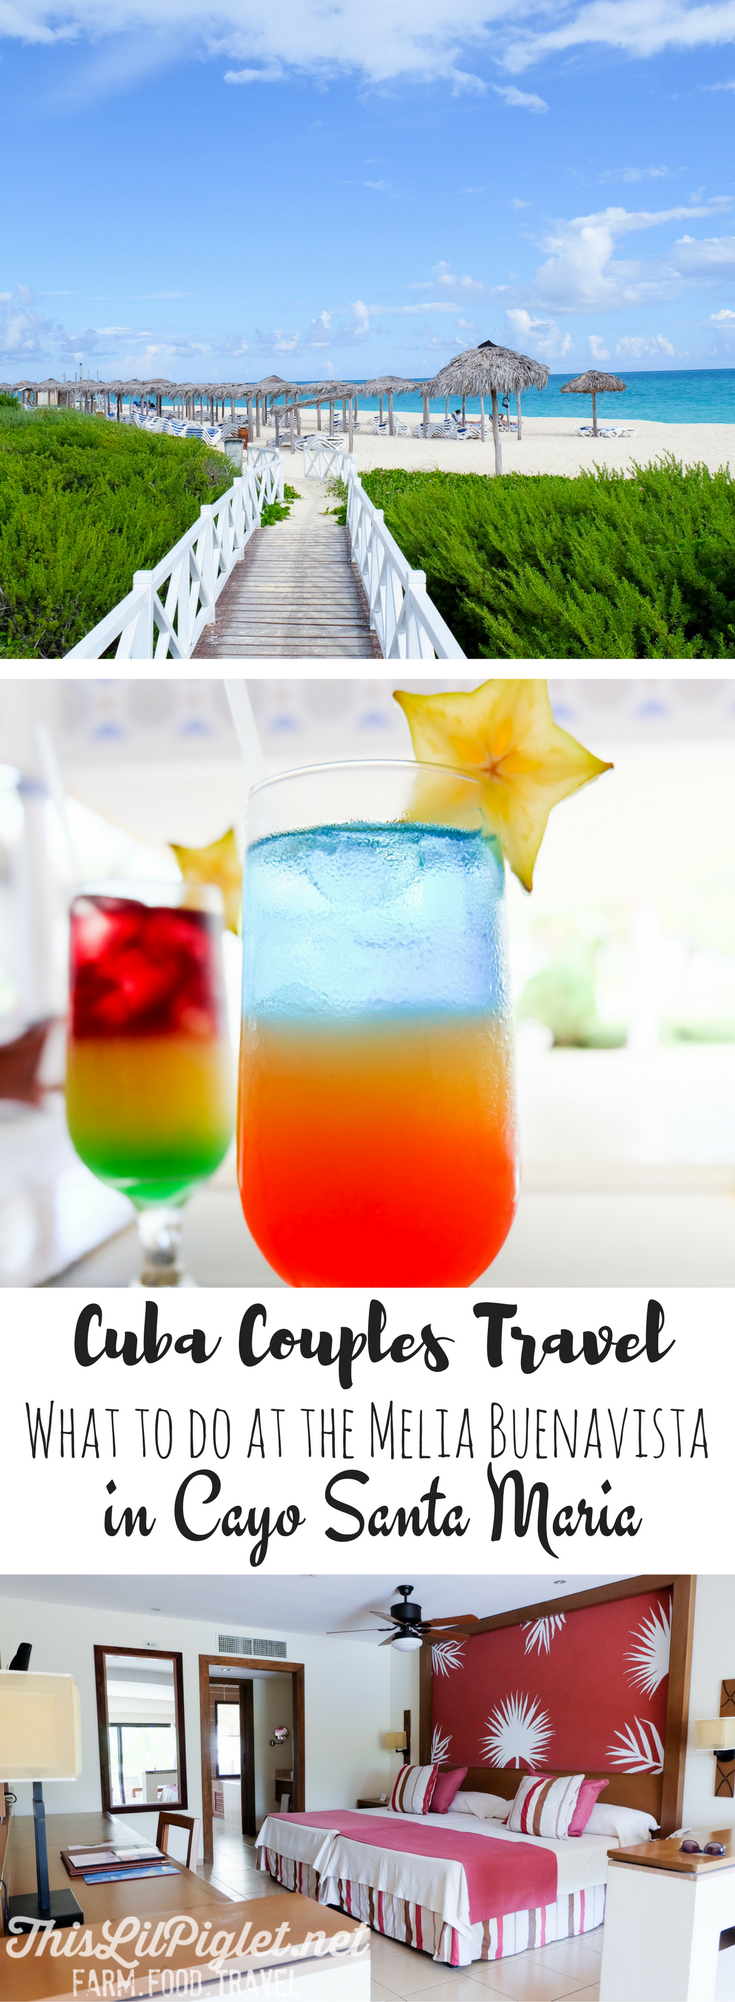 Cuba Couples Travel: What to do at the Melia Buenavista Cayo Santa Maria // thislilpiglet.net